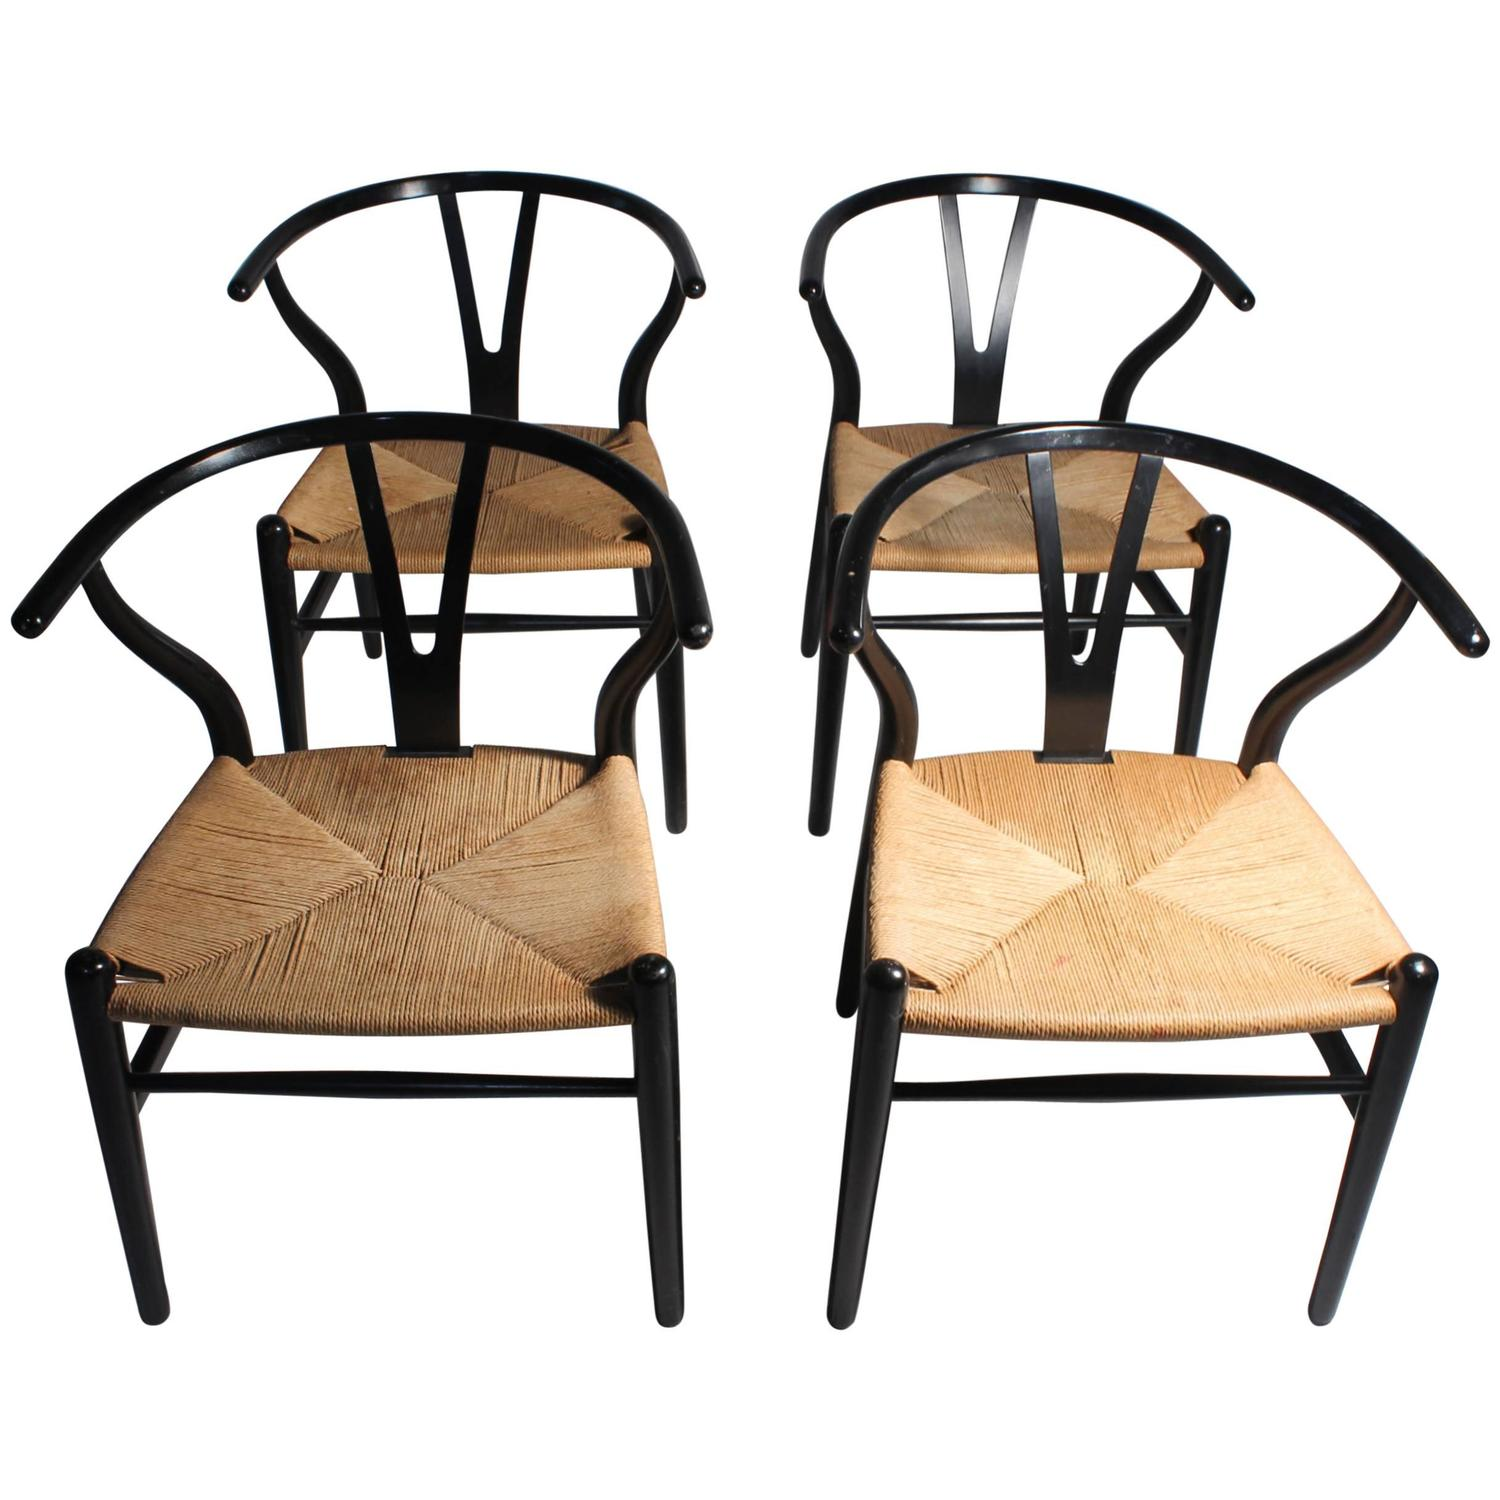 Authentic Set of Four Vintage Hans Wegner Wishbone Chairs CH24